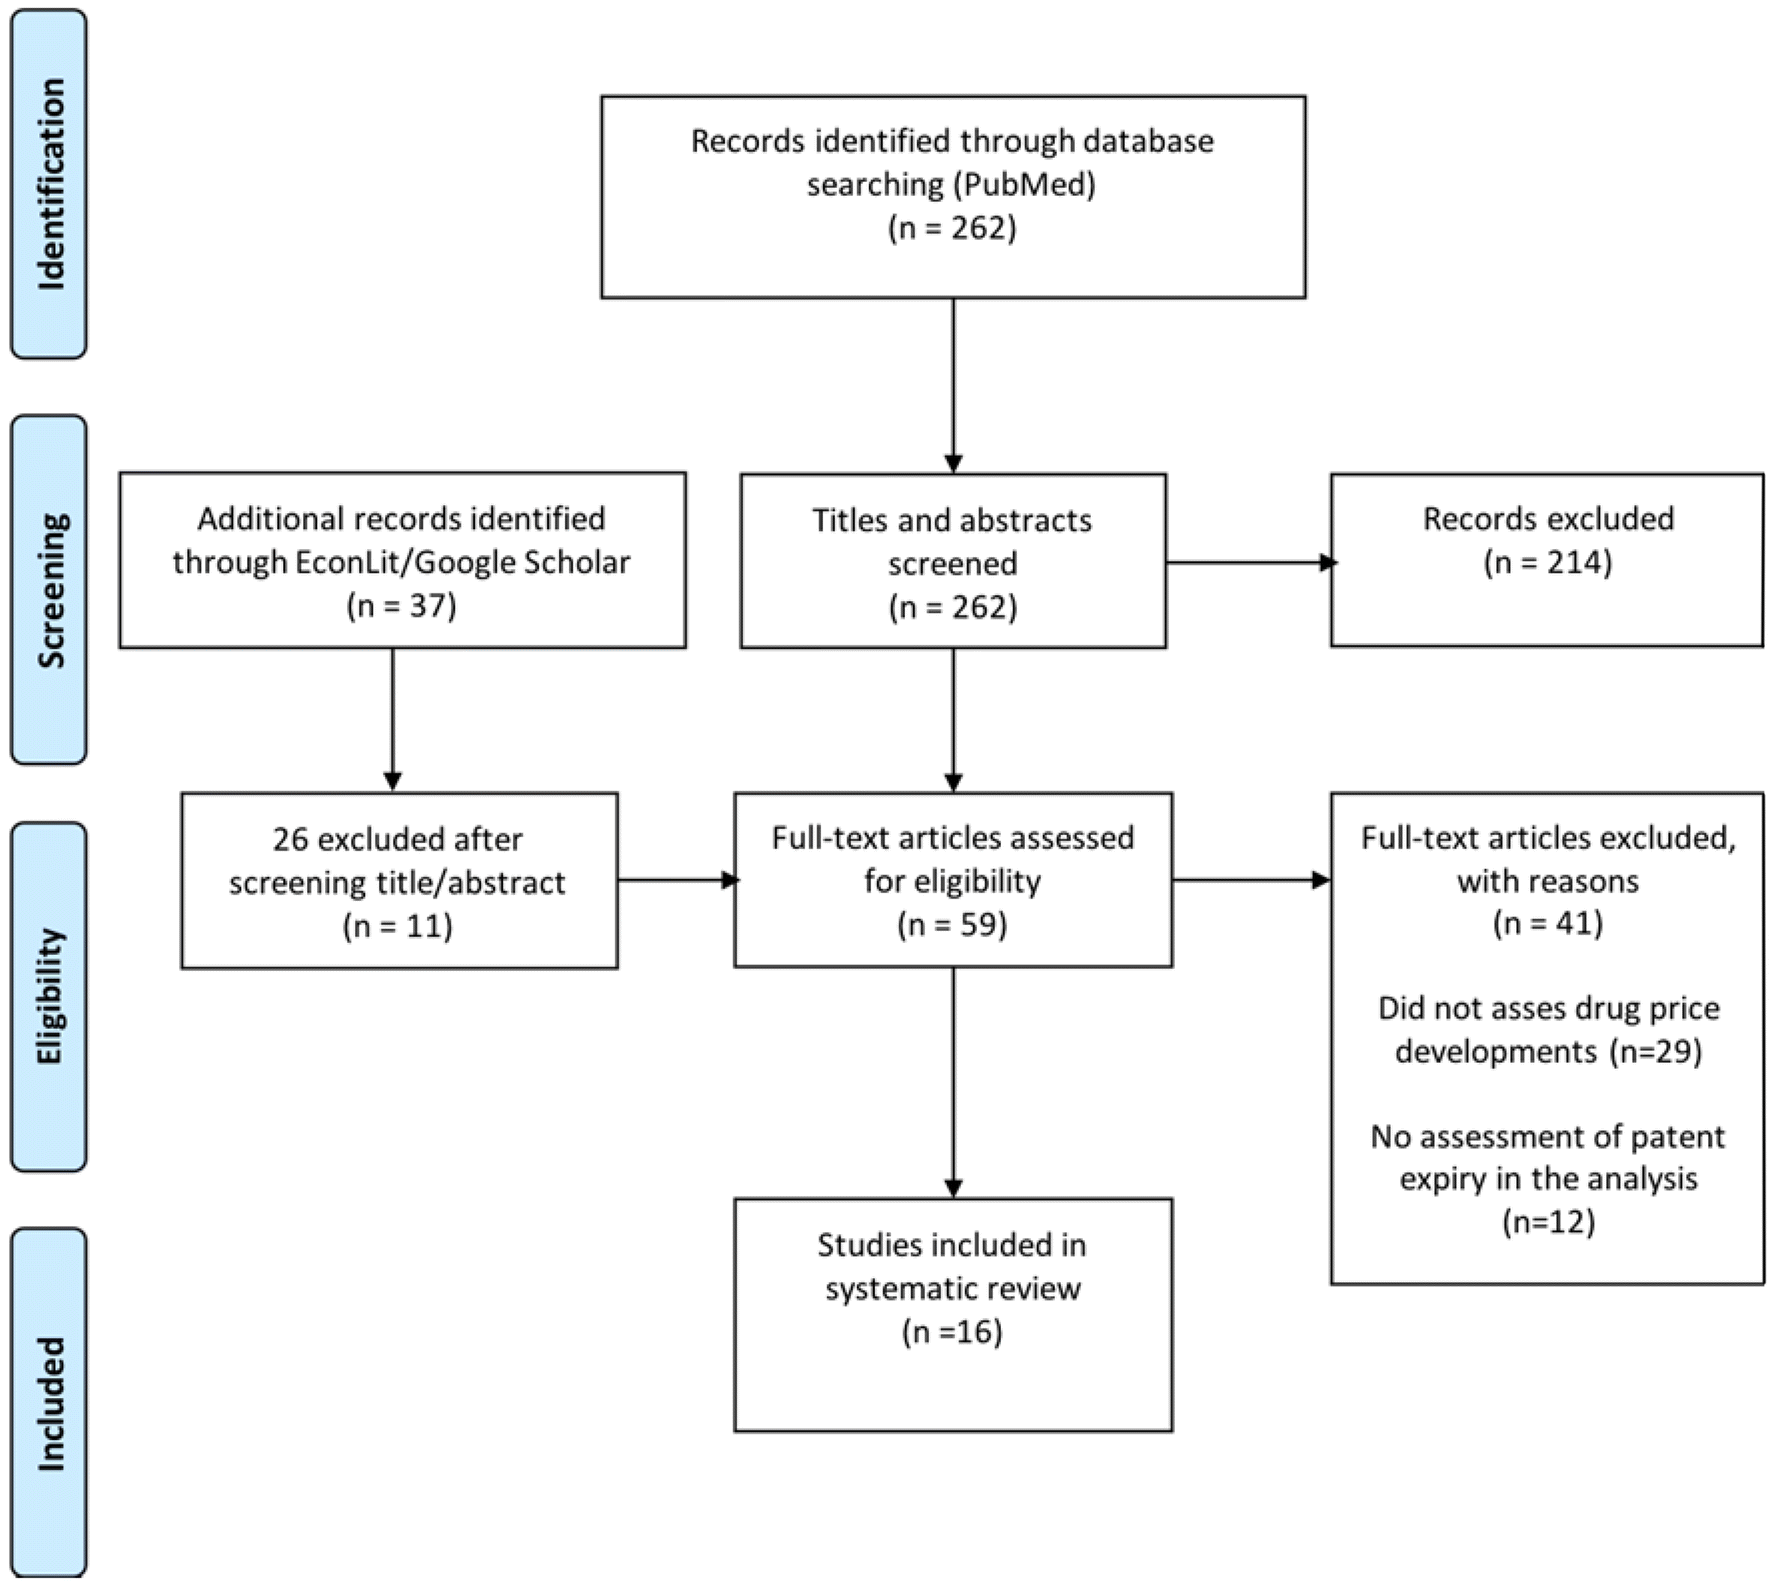 Figure 1 - Flow diagram of the study selection process